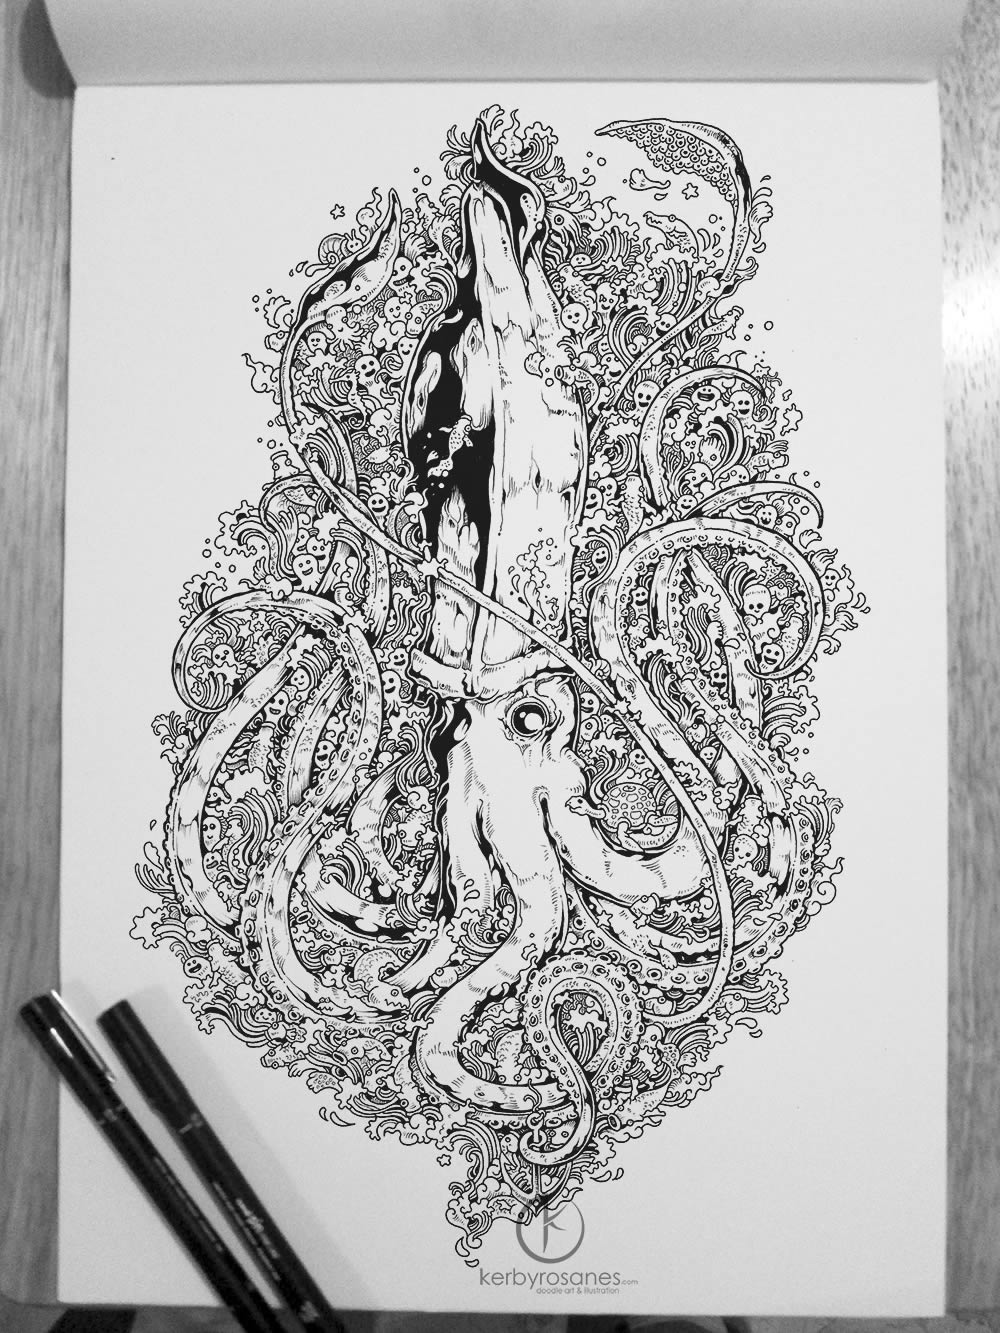 Octopus sketchbook drawing by Kerby Rosanes